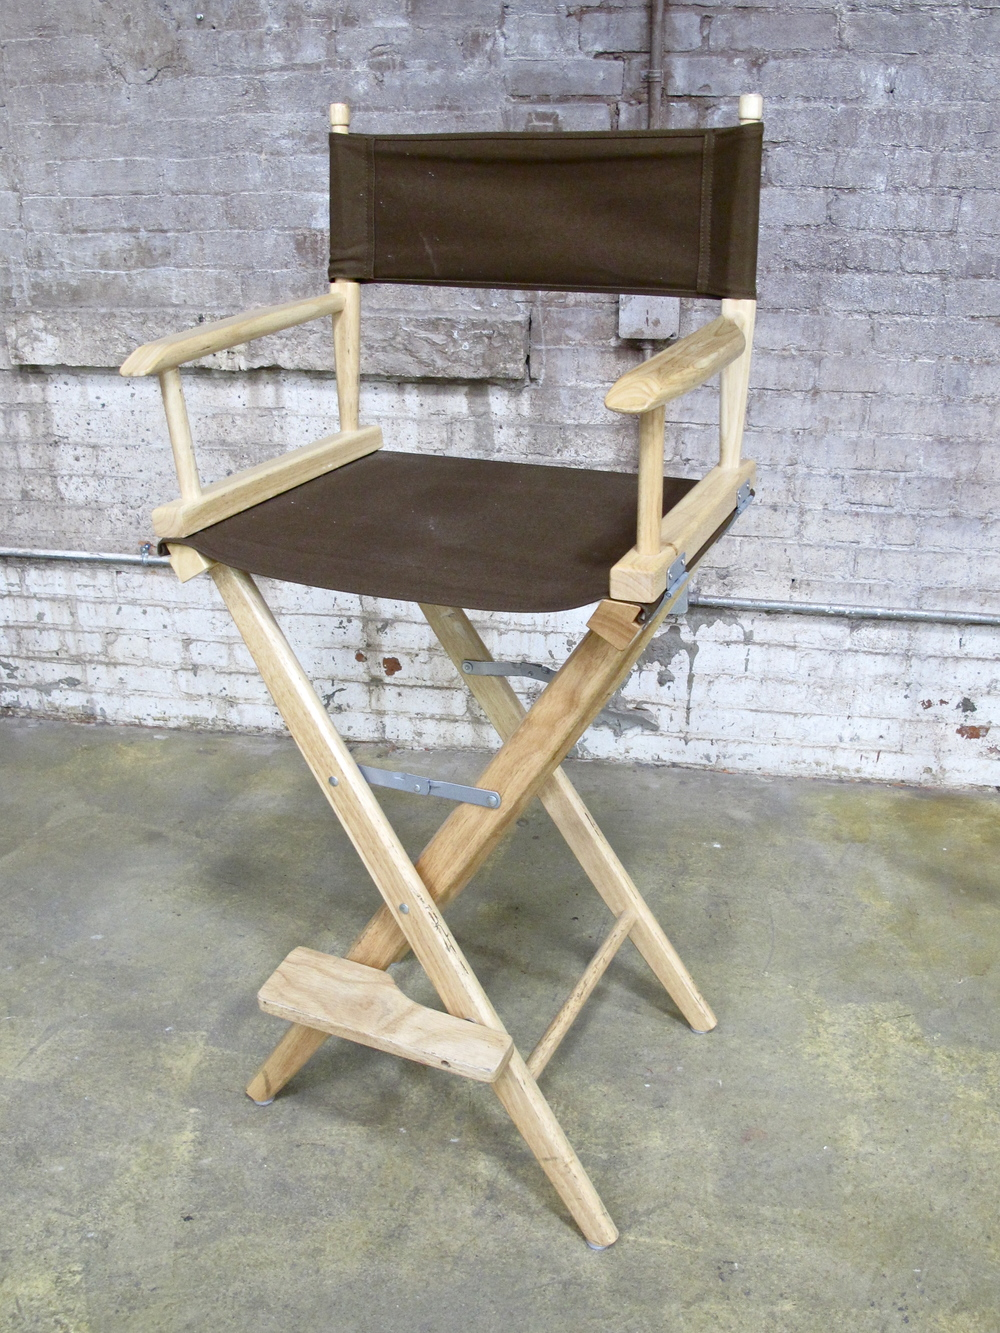 Brown Tall Director's Chair $40